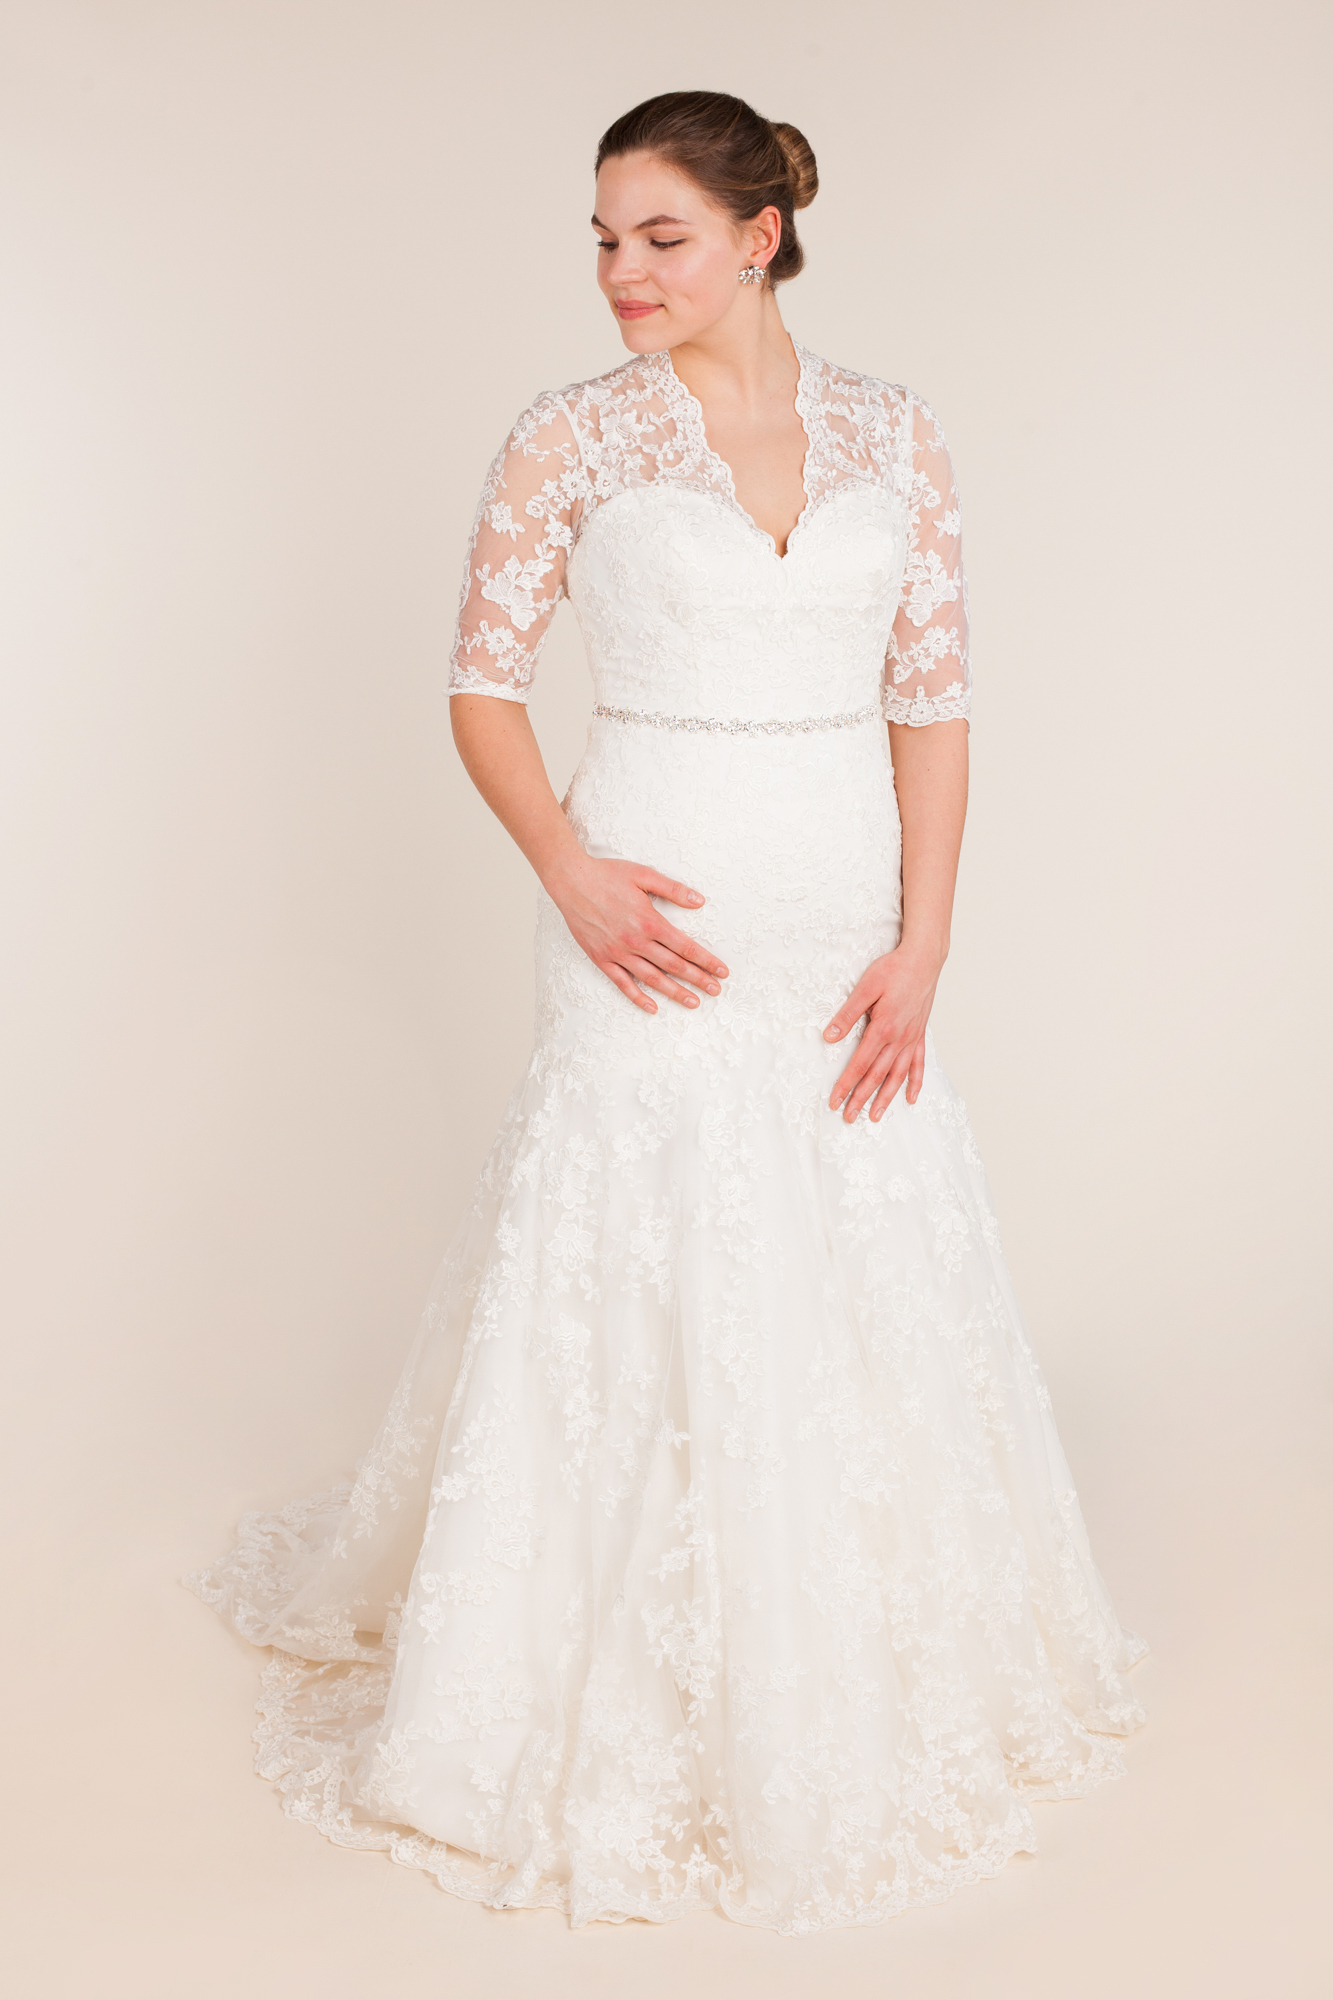 Allure bridals - 8900 size 0 - $850 - (29% OFF)